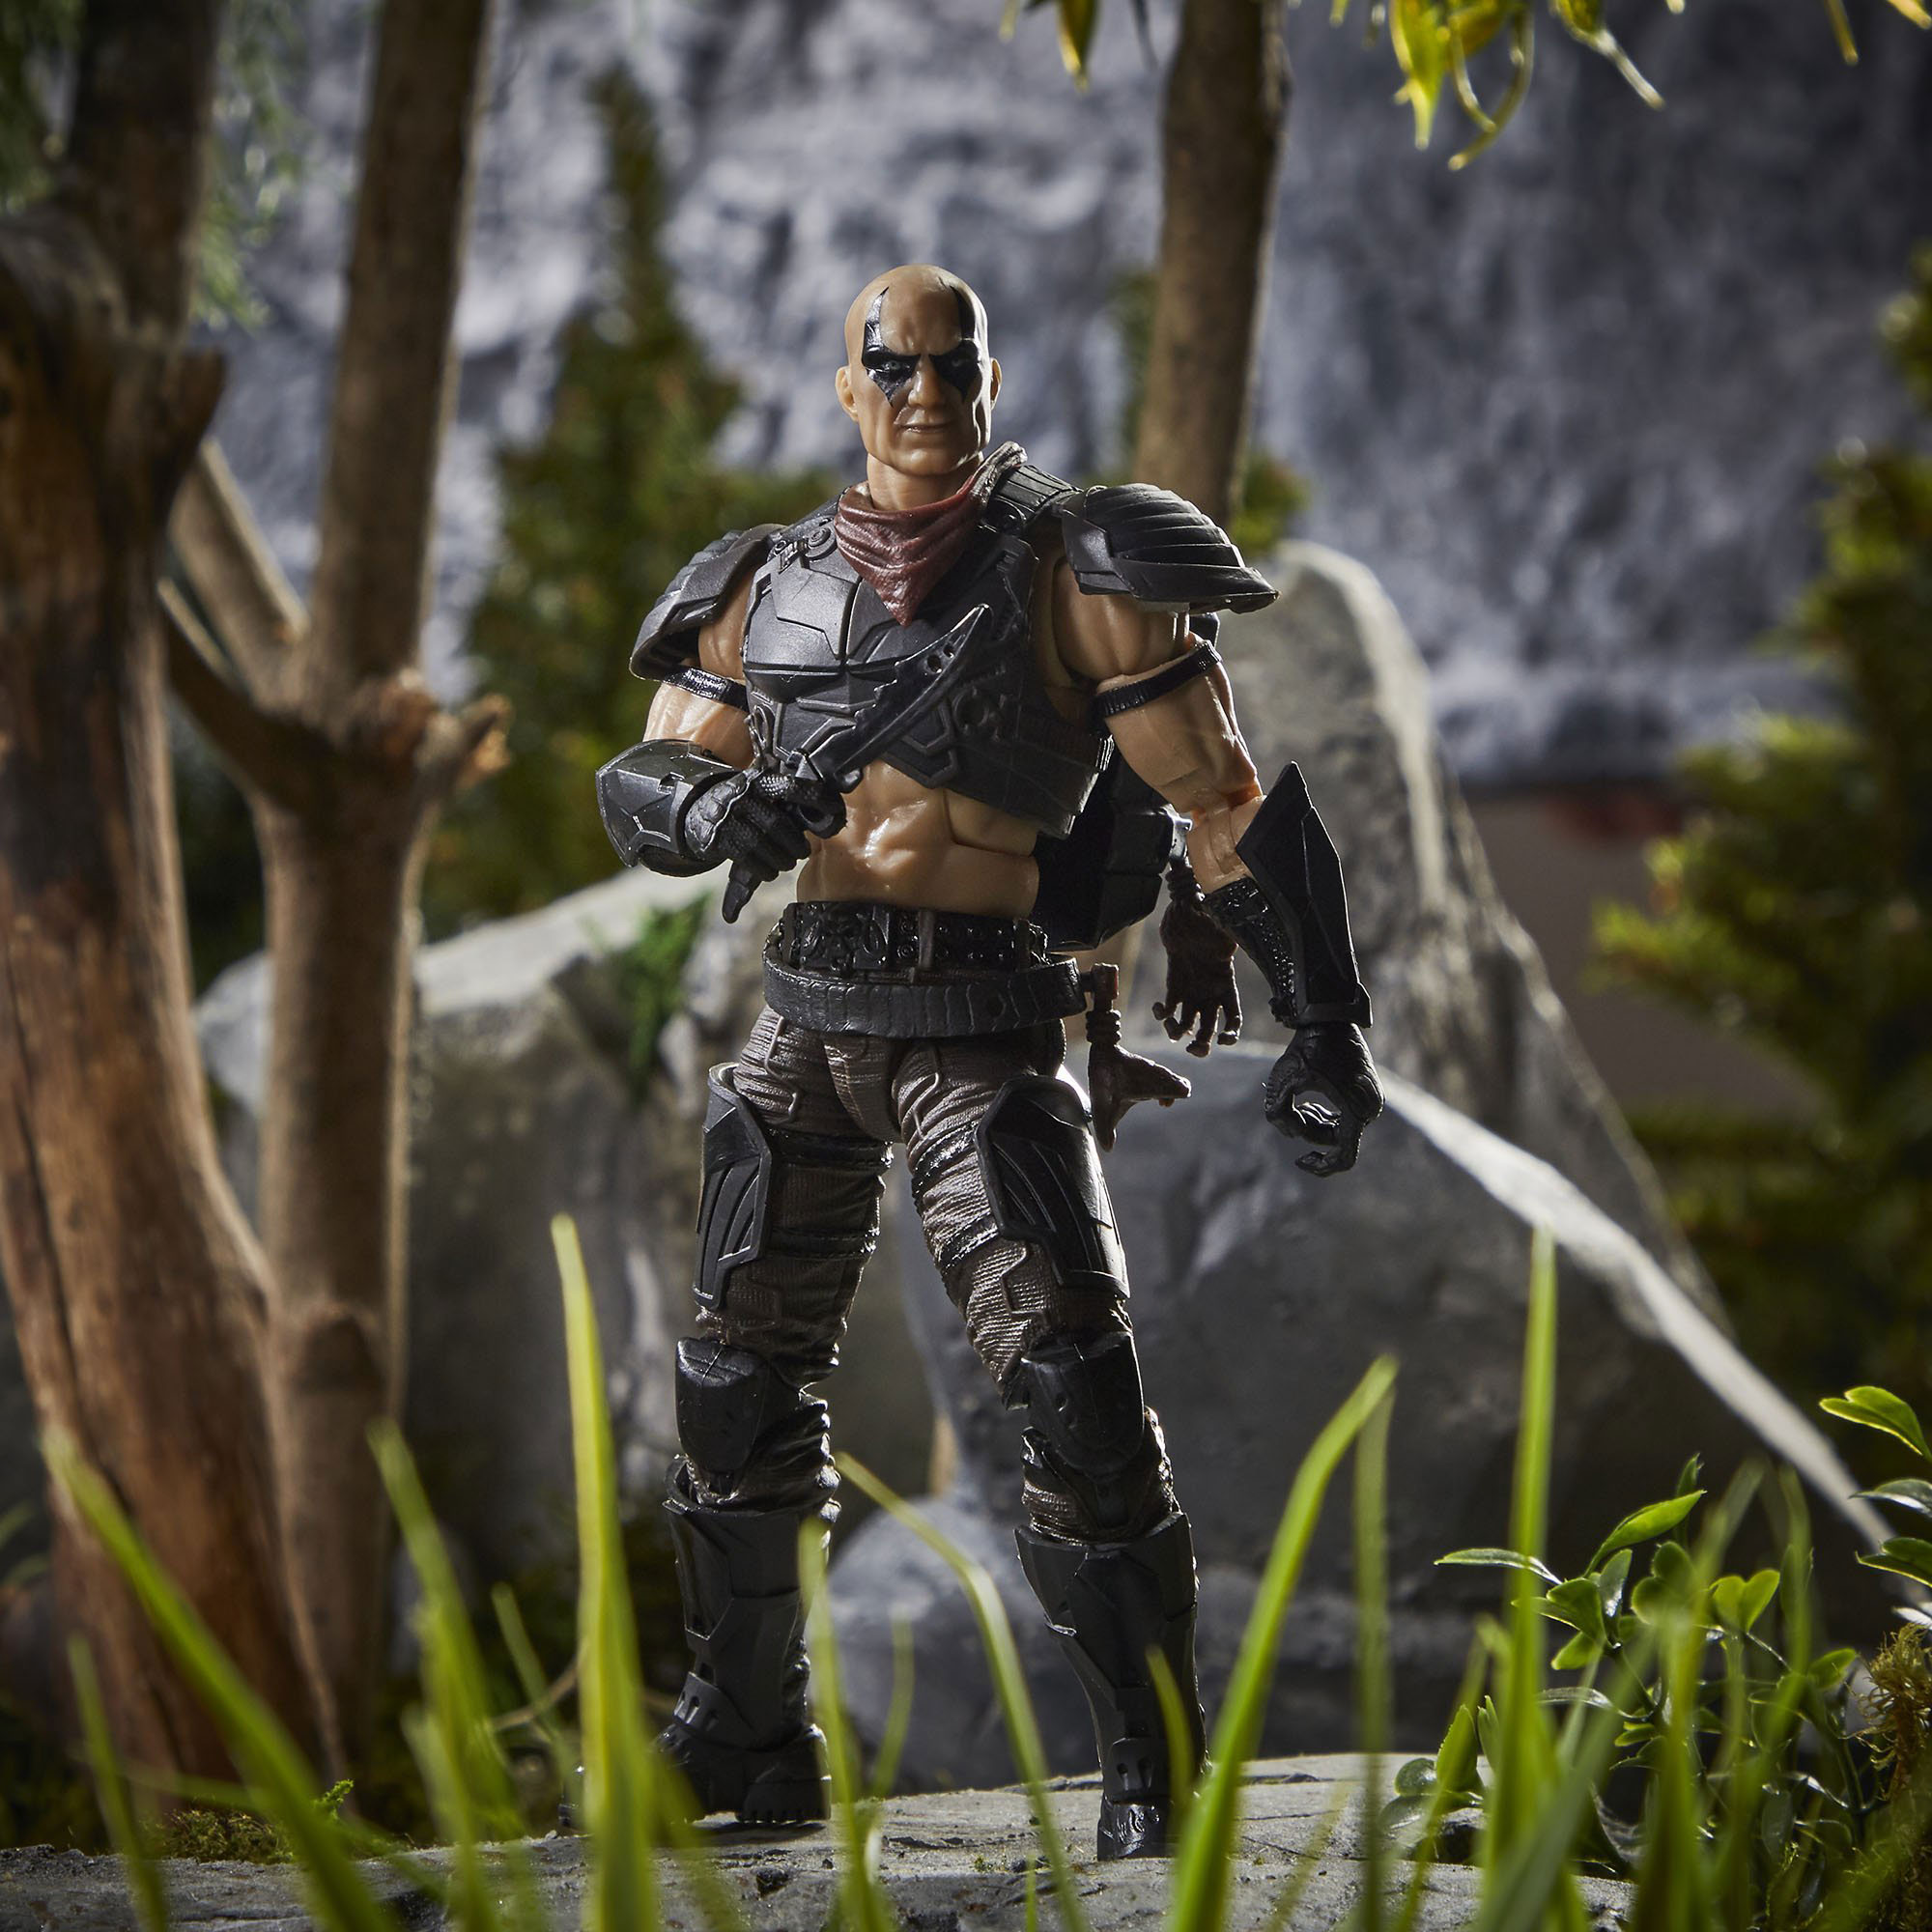 gi-joe-classified-series-zartan-action-figure-6